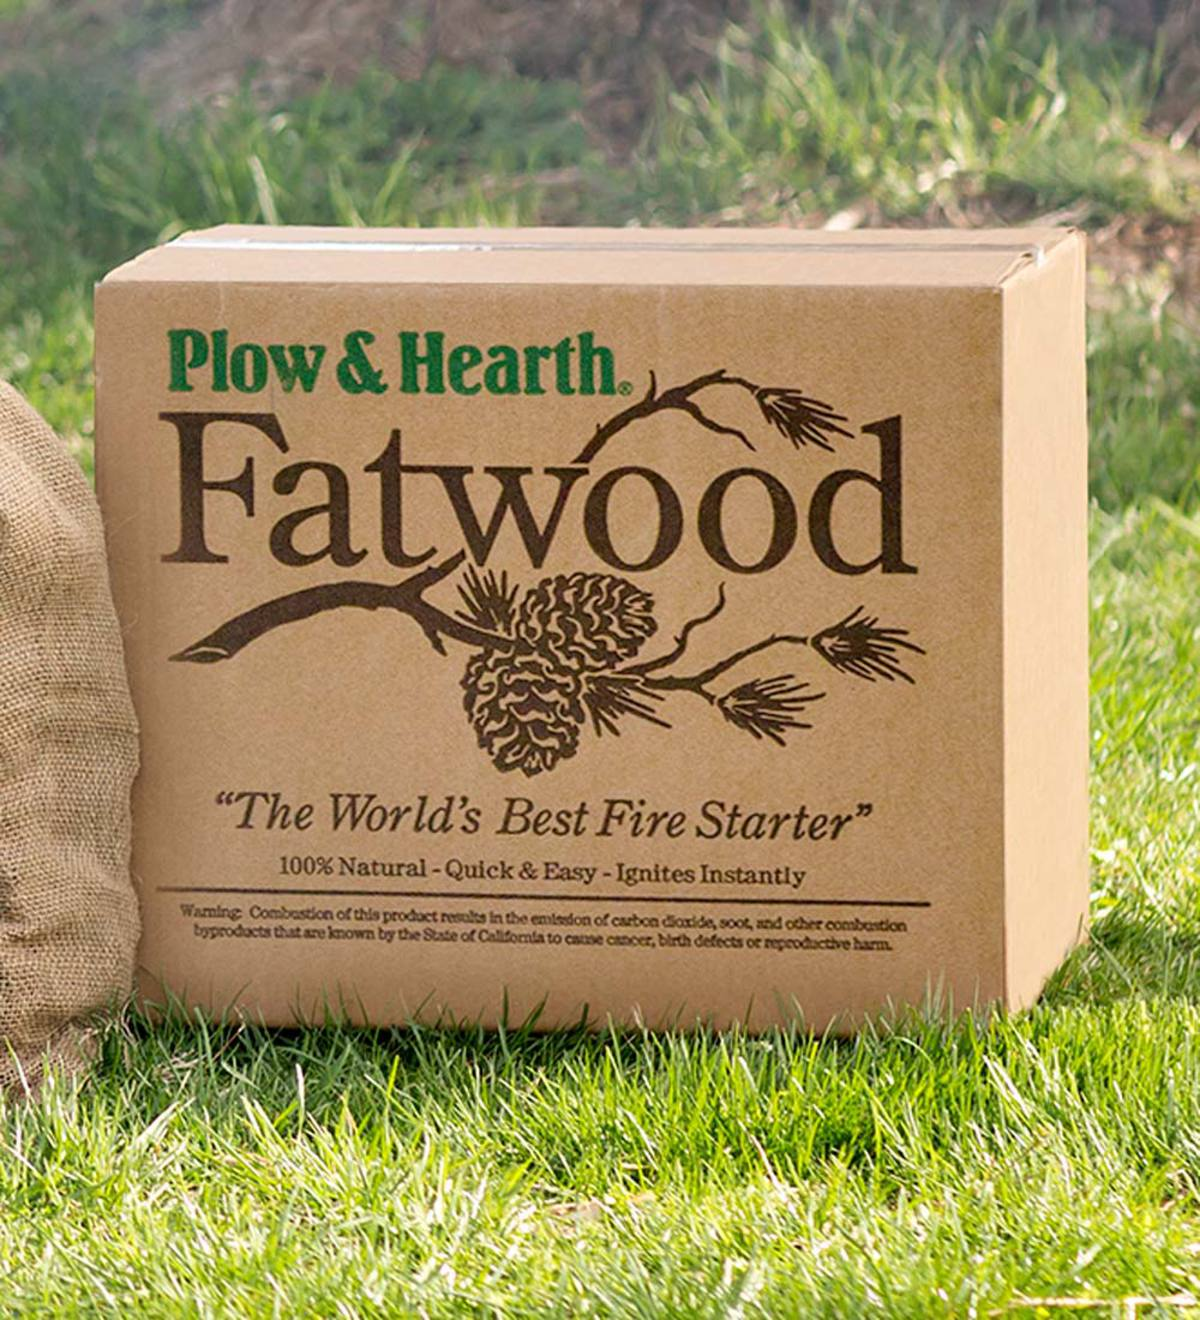 Fatwood Fire-Starter, 50 lb. Box